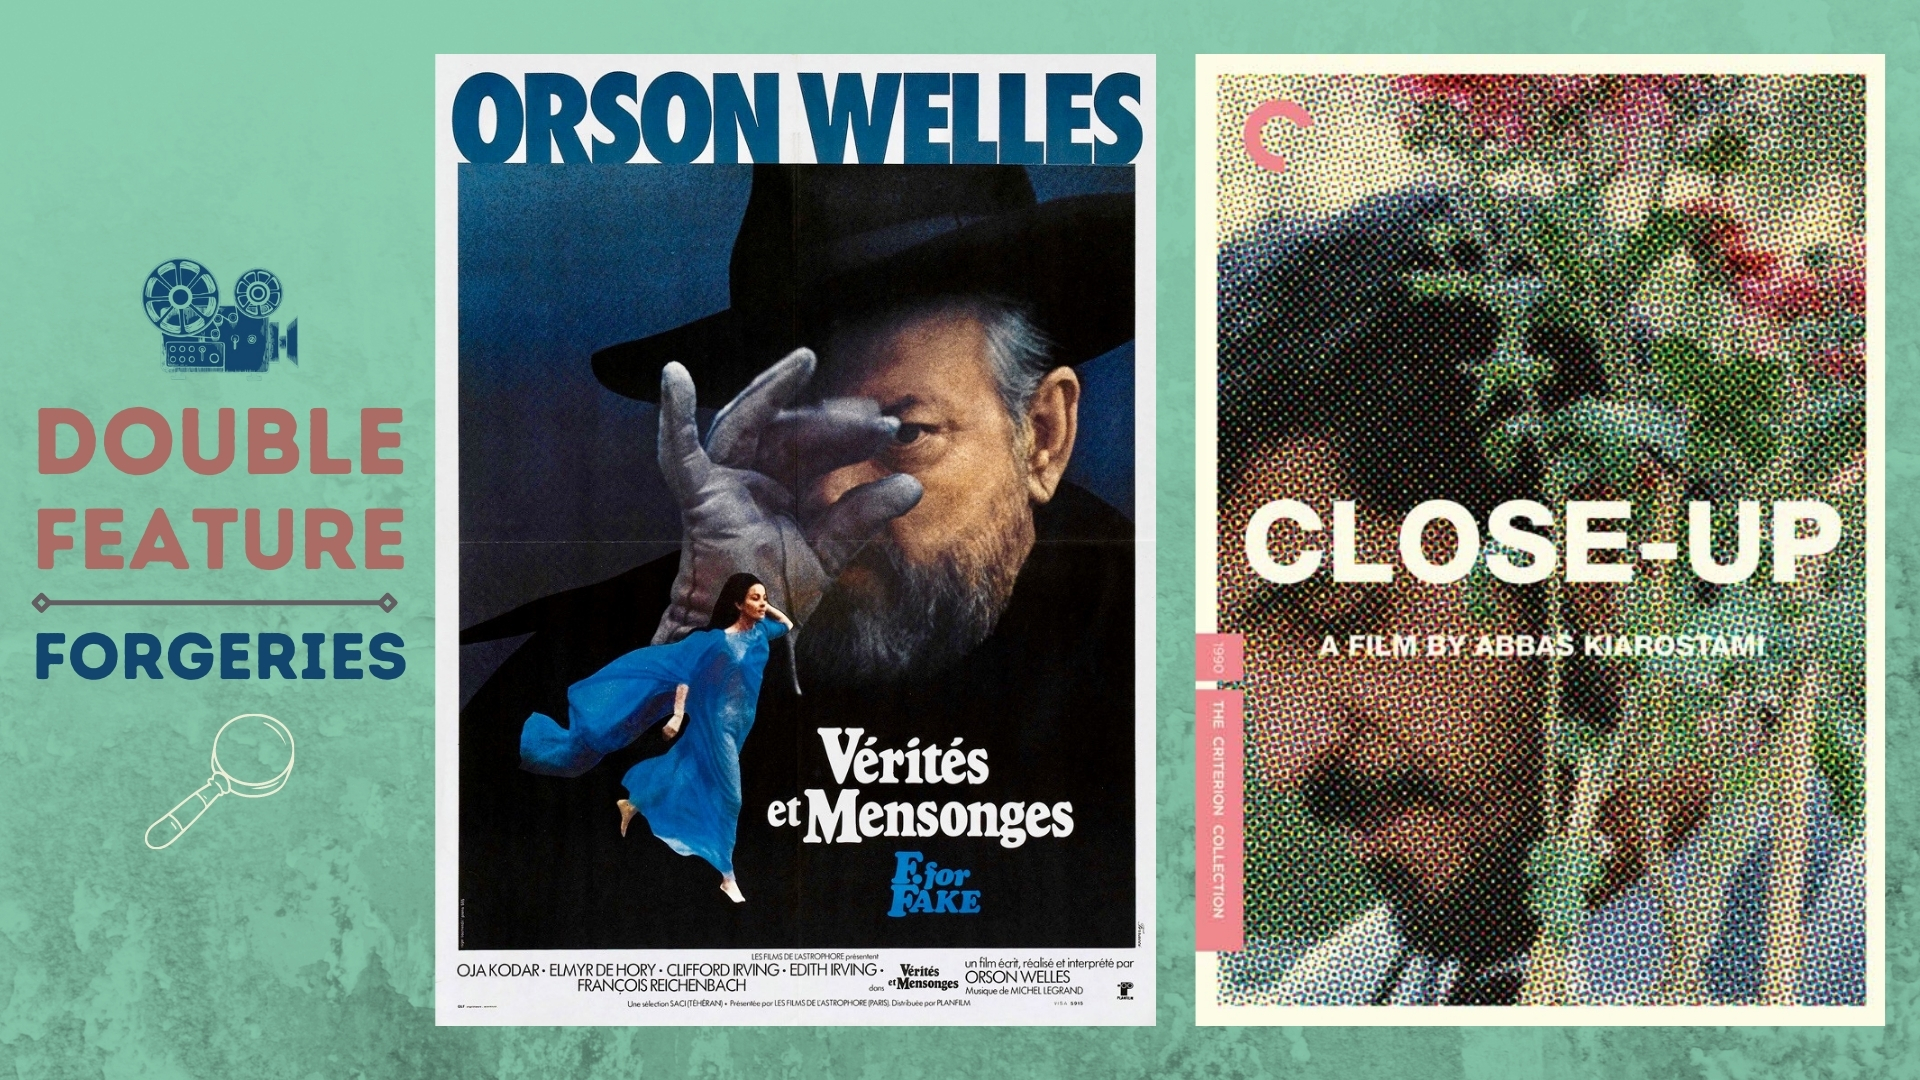 Double Feature Review   Fake Views: Art Forgeries and Honest Cinema